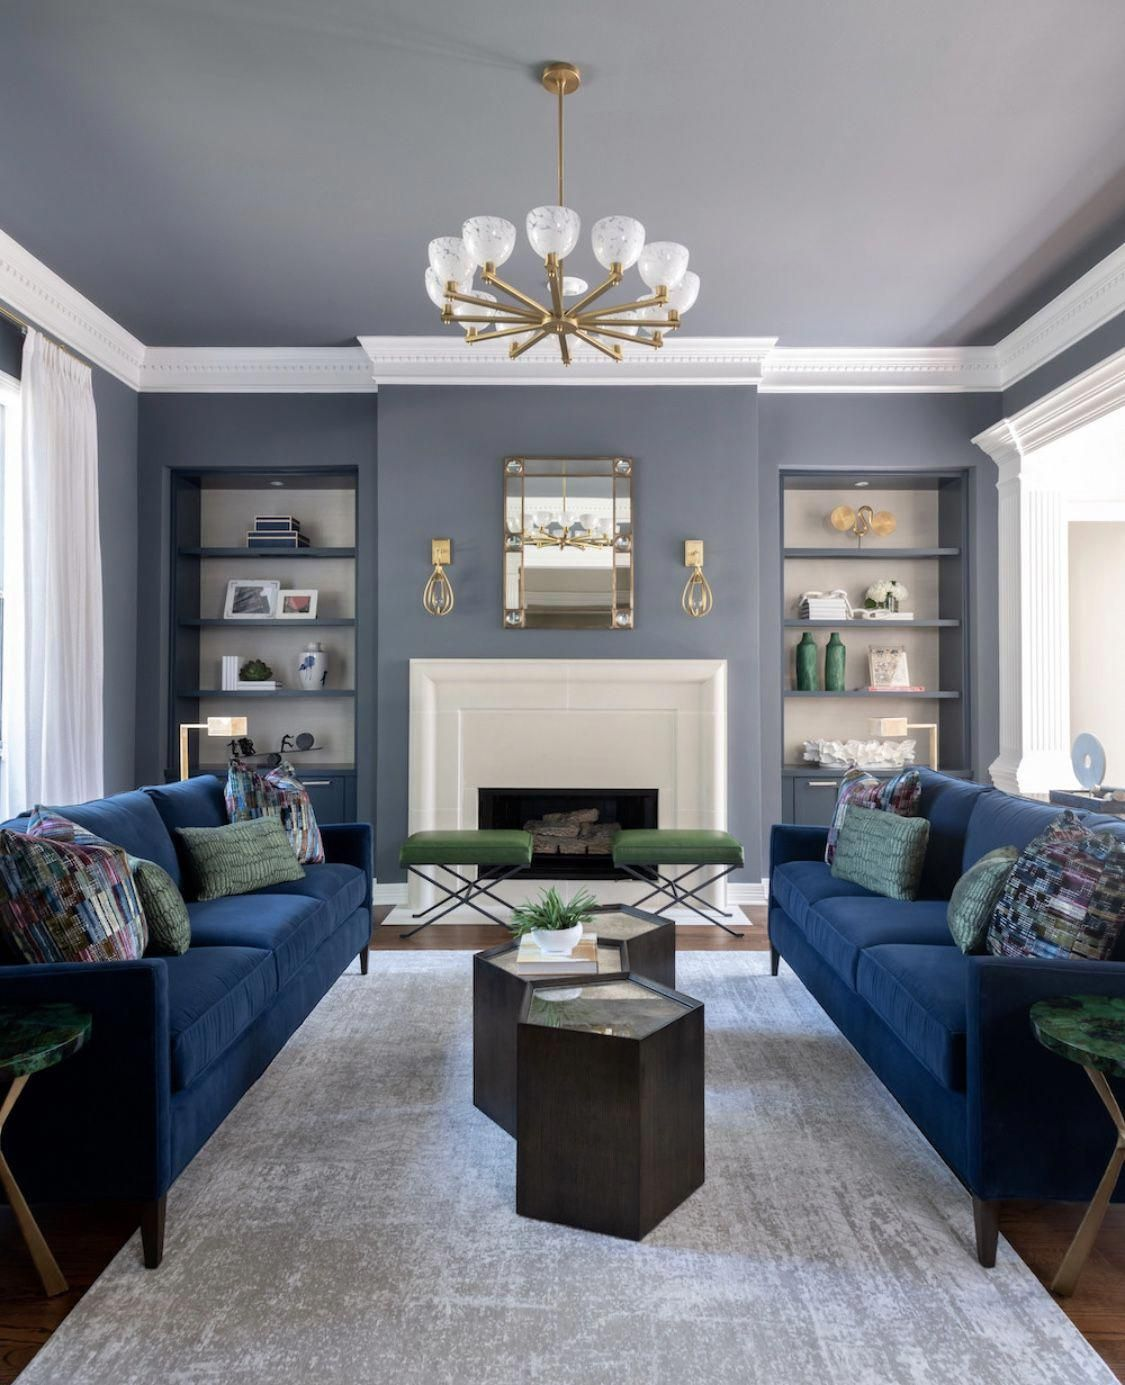 Traditional Style Grey And Blue Living Room Decor With Blue Velvet Sofas Blue Sofas Living Room Blue Living Room Decor Living Room Decor Gray